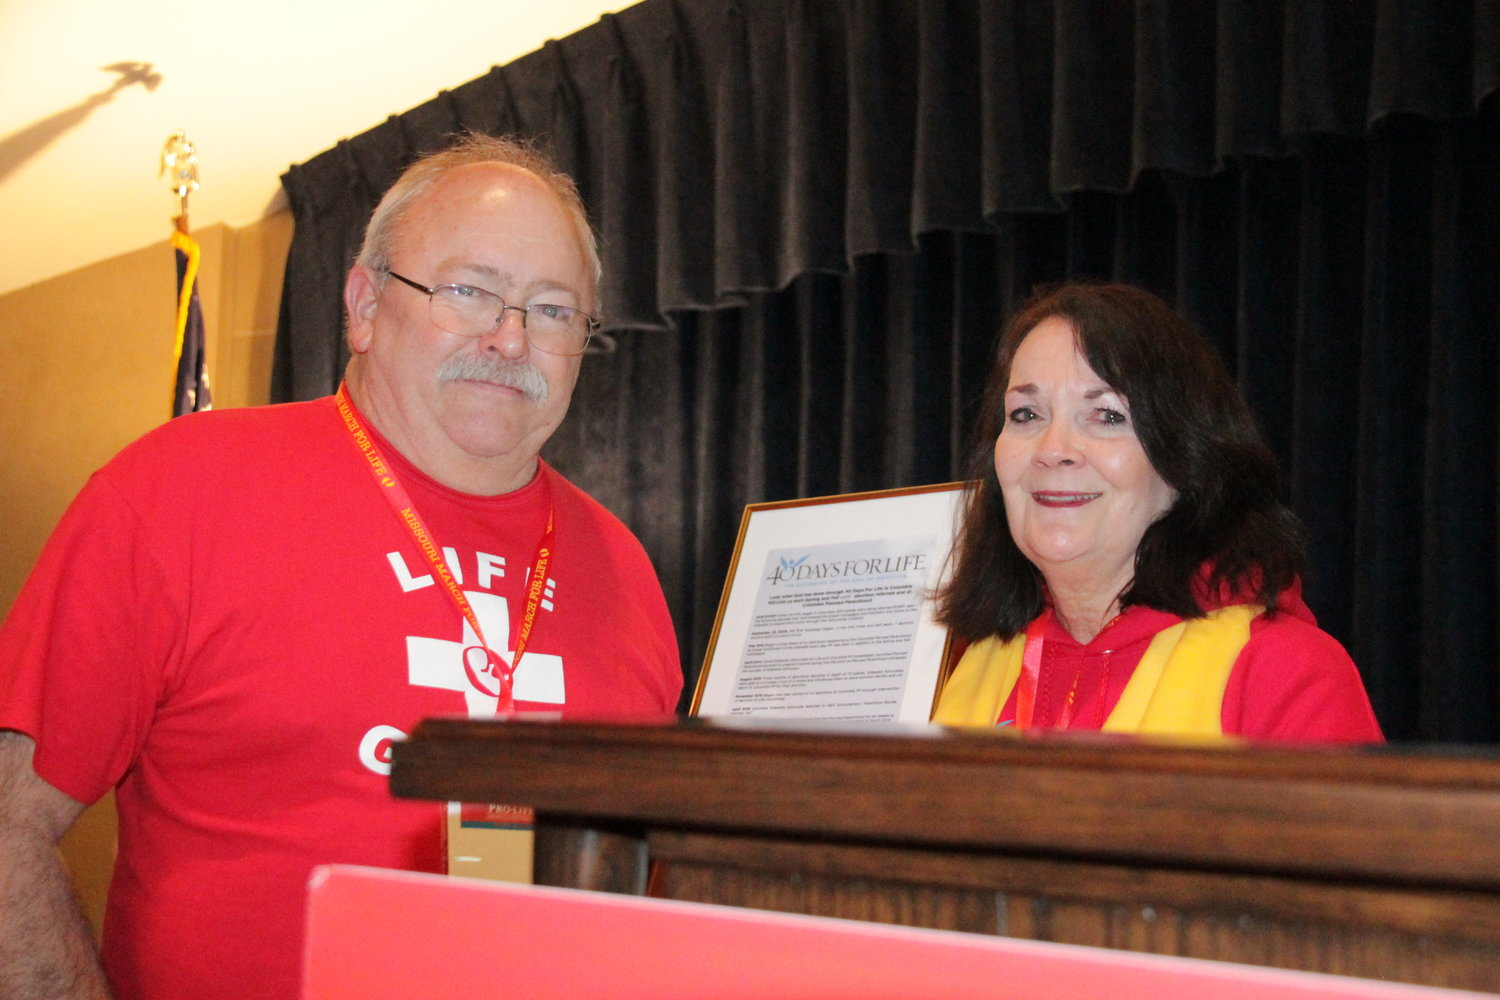 Mike and Kathy Forck, leaders of the Columbia 40 Days for Life Campaign and the Midwest March for Life, accept special recognition from 40 Days for Life during a rally at the end of this year's march.